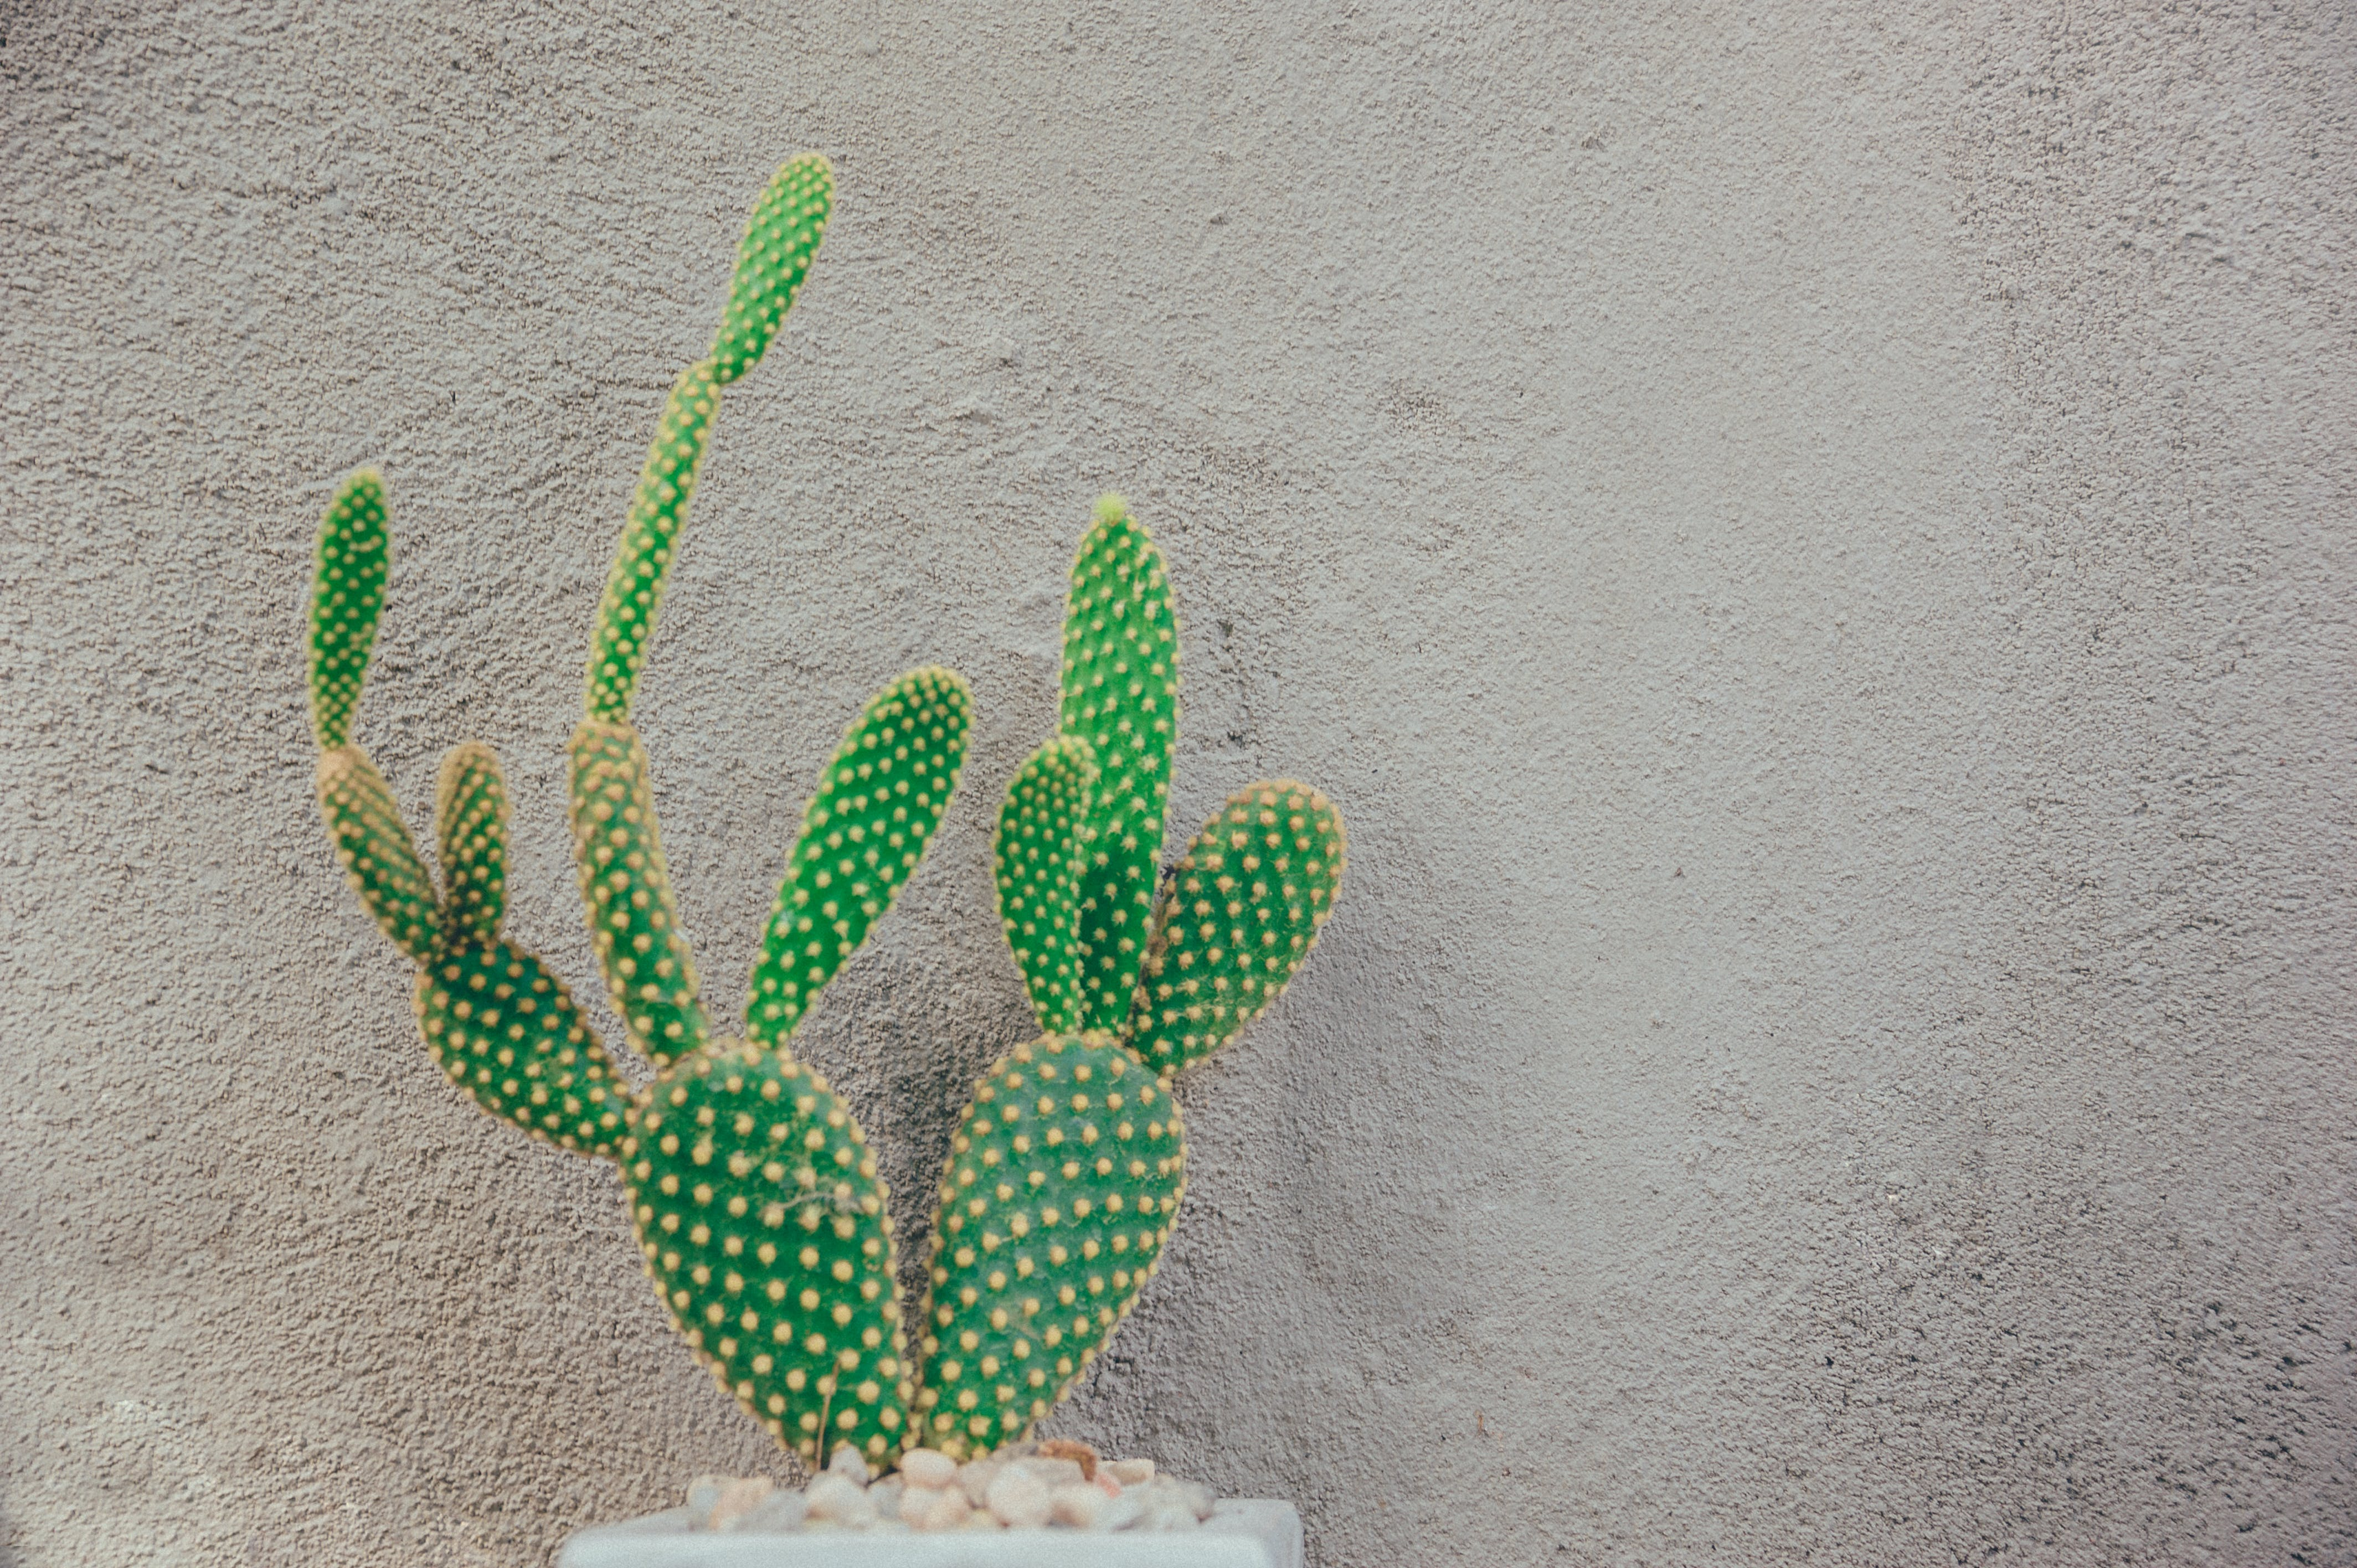 Green Cactus Near Gray Concrete Wall